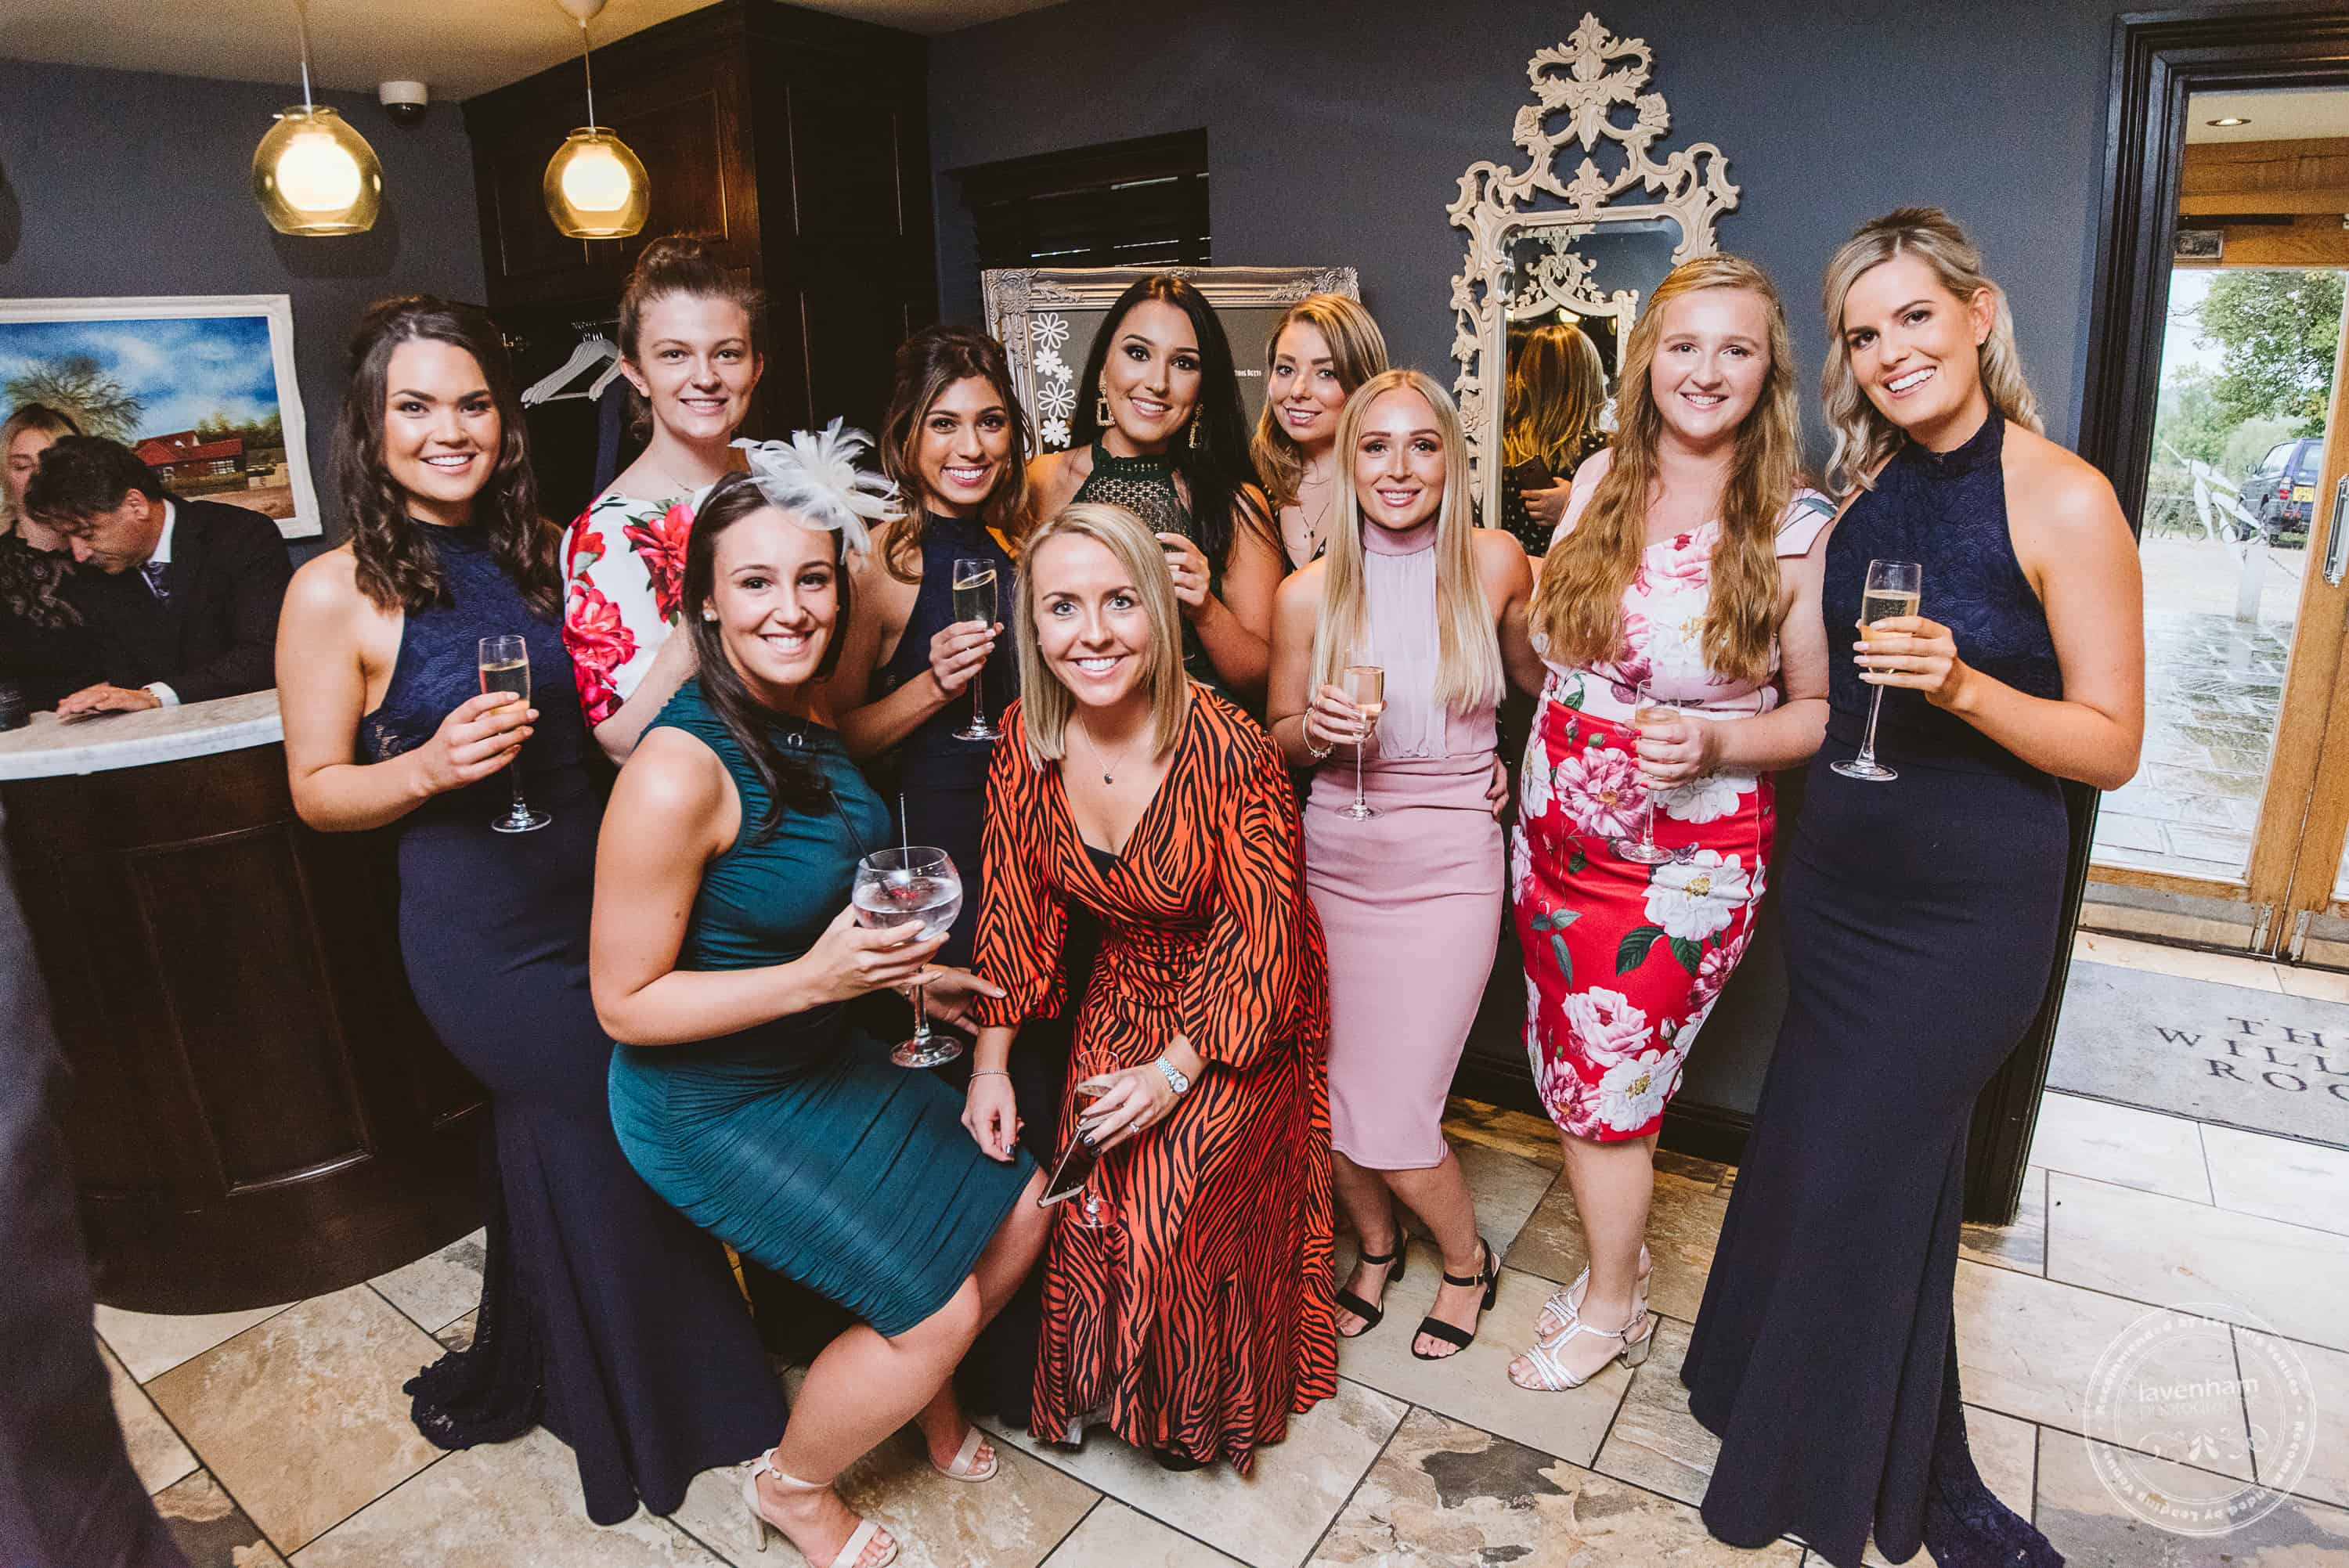 261019 Bull and Willow Room Essex Wedding Photographer 091